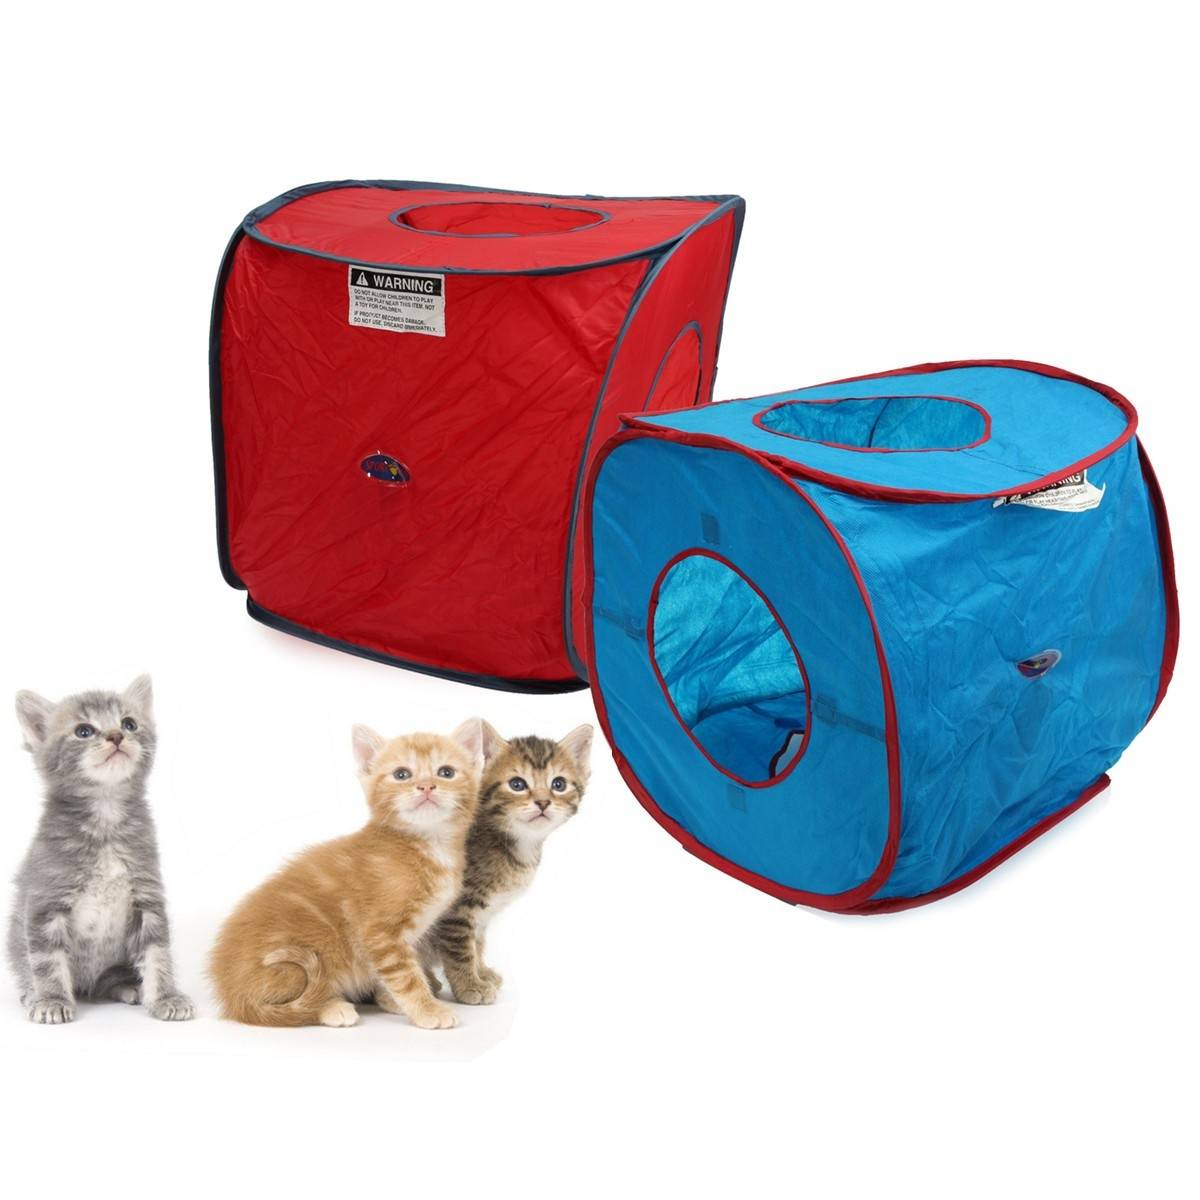 Portable Cat Tent Pop Up Dog Kitten Play Cube Cat Puppy Rabbit House Bed Pet Toy  sc 1 st  Banggood & portable cat tent pop up dog kitten play cube cat puppy rabbit house ...